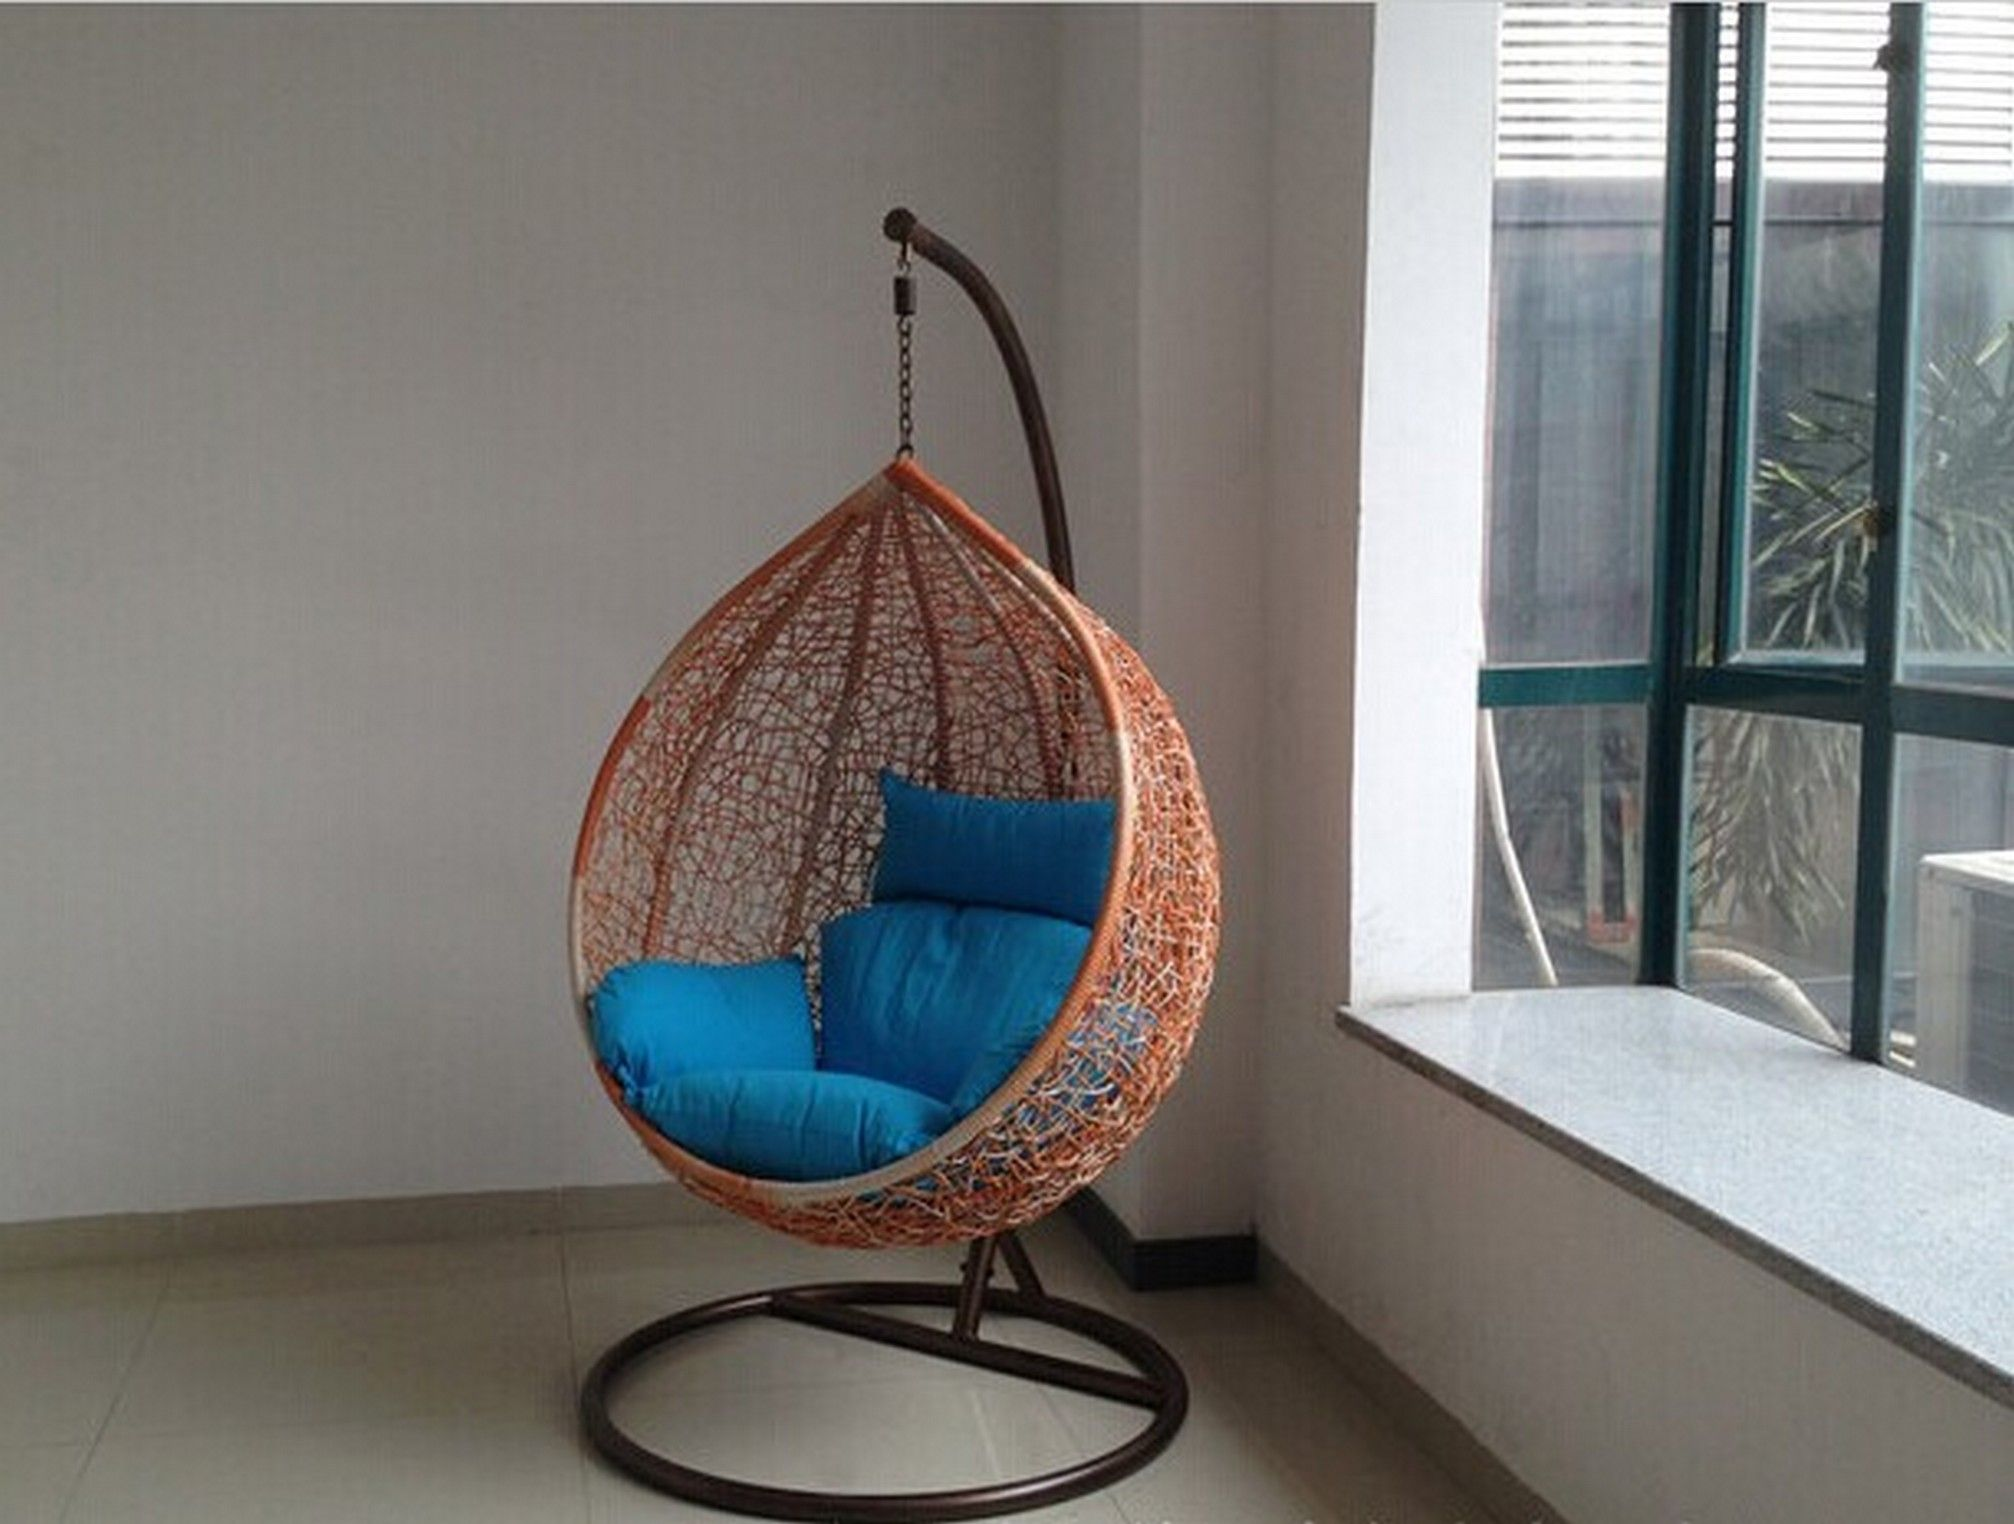 Pin by georgia mathews on indoor garden pinterest for Bedroom hammock chair